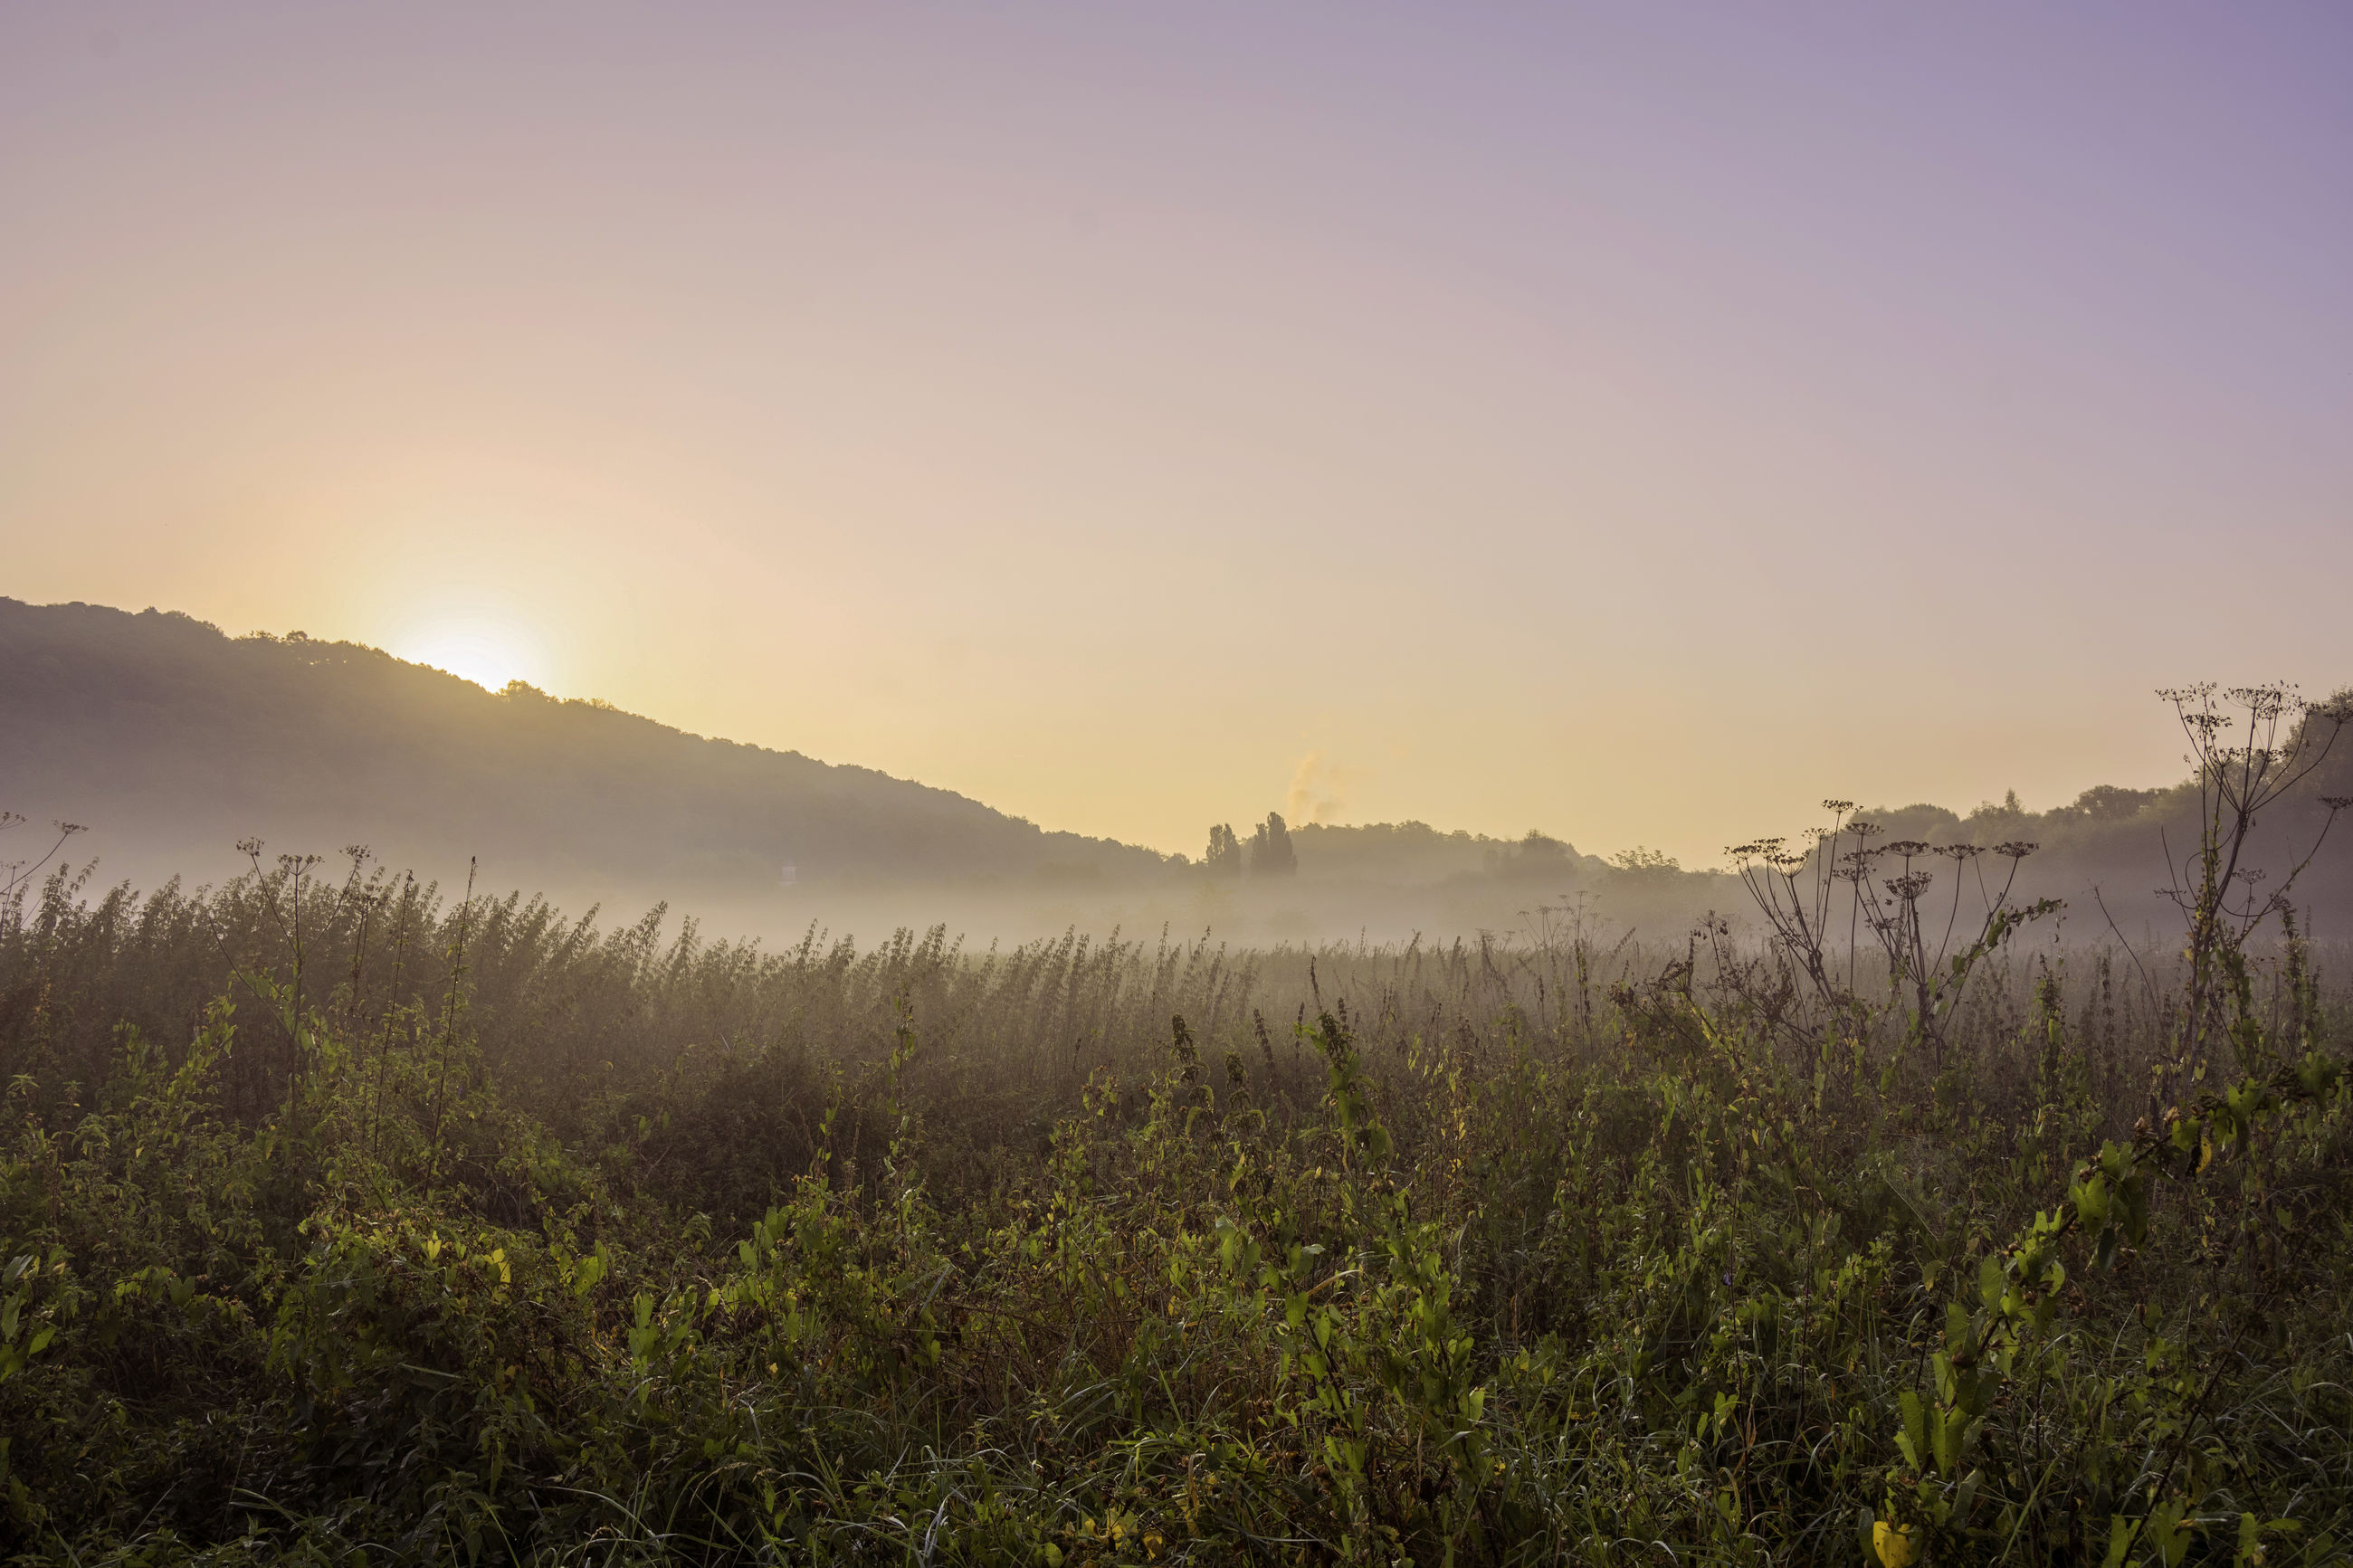 SCENIC VIEW OF LANDSCAPE DURING SUNRISE